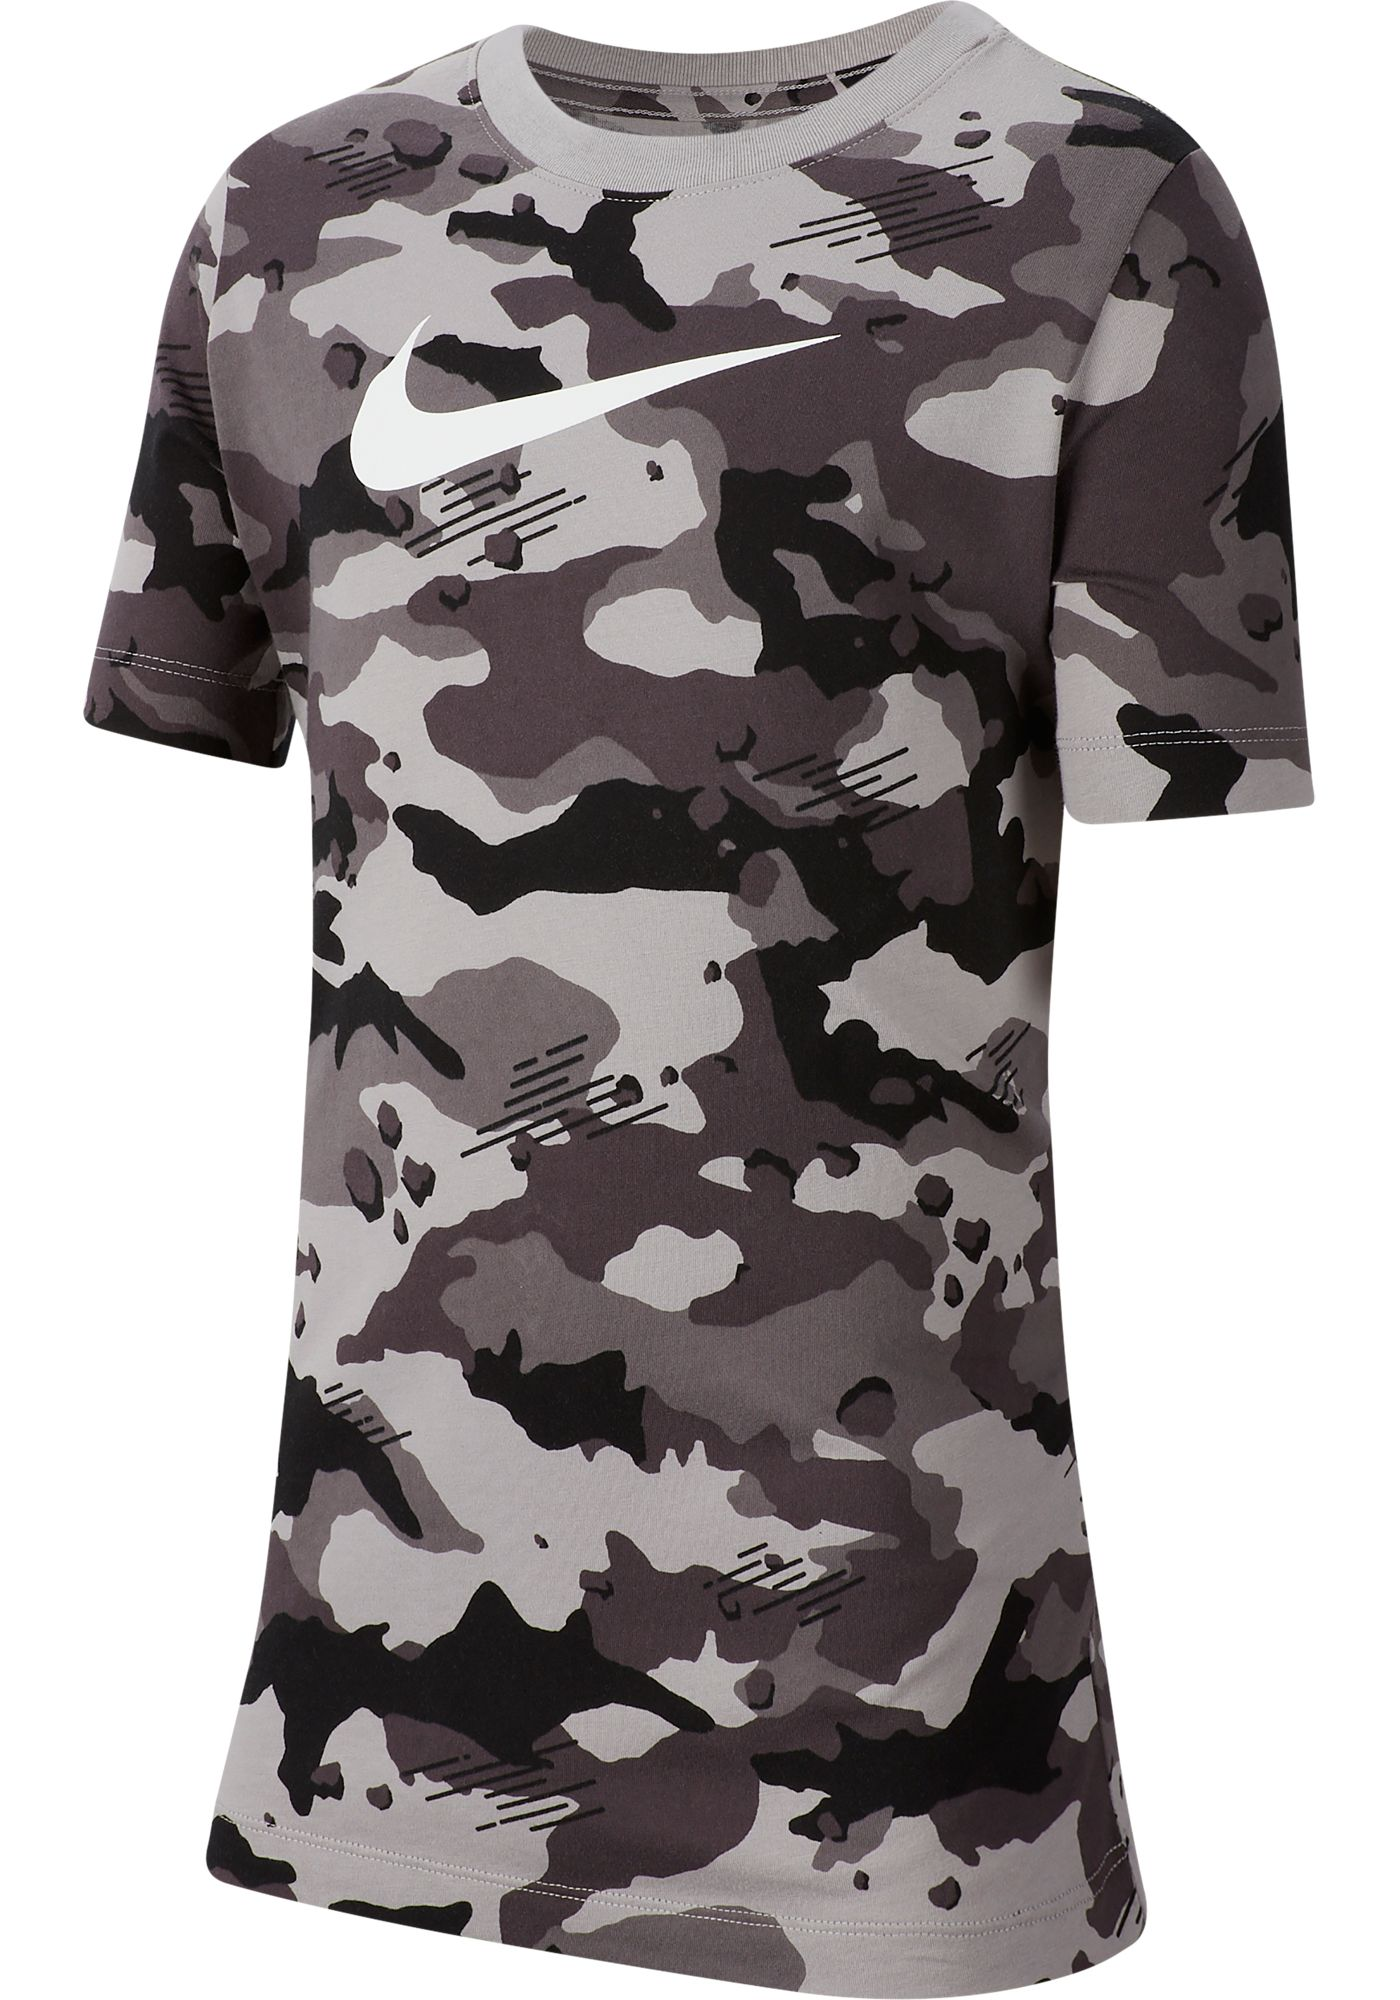 Nike Boys' Sportswear Camo Allover Print Graphic Tee